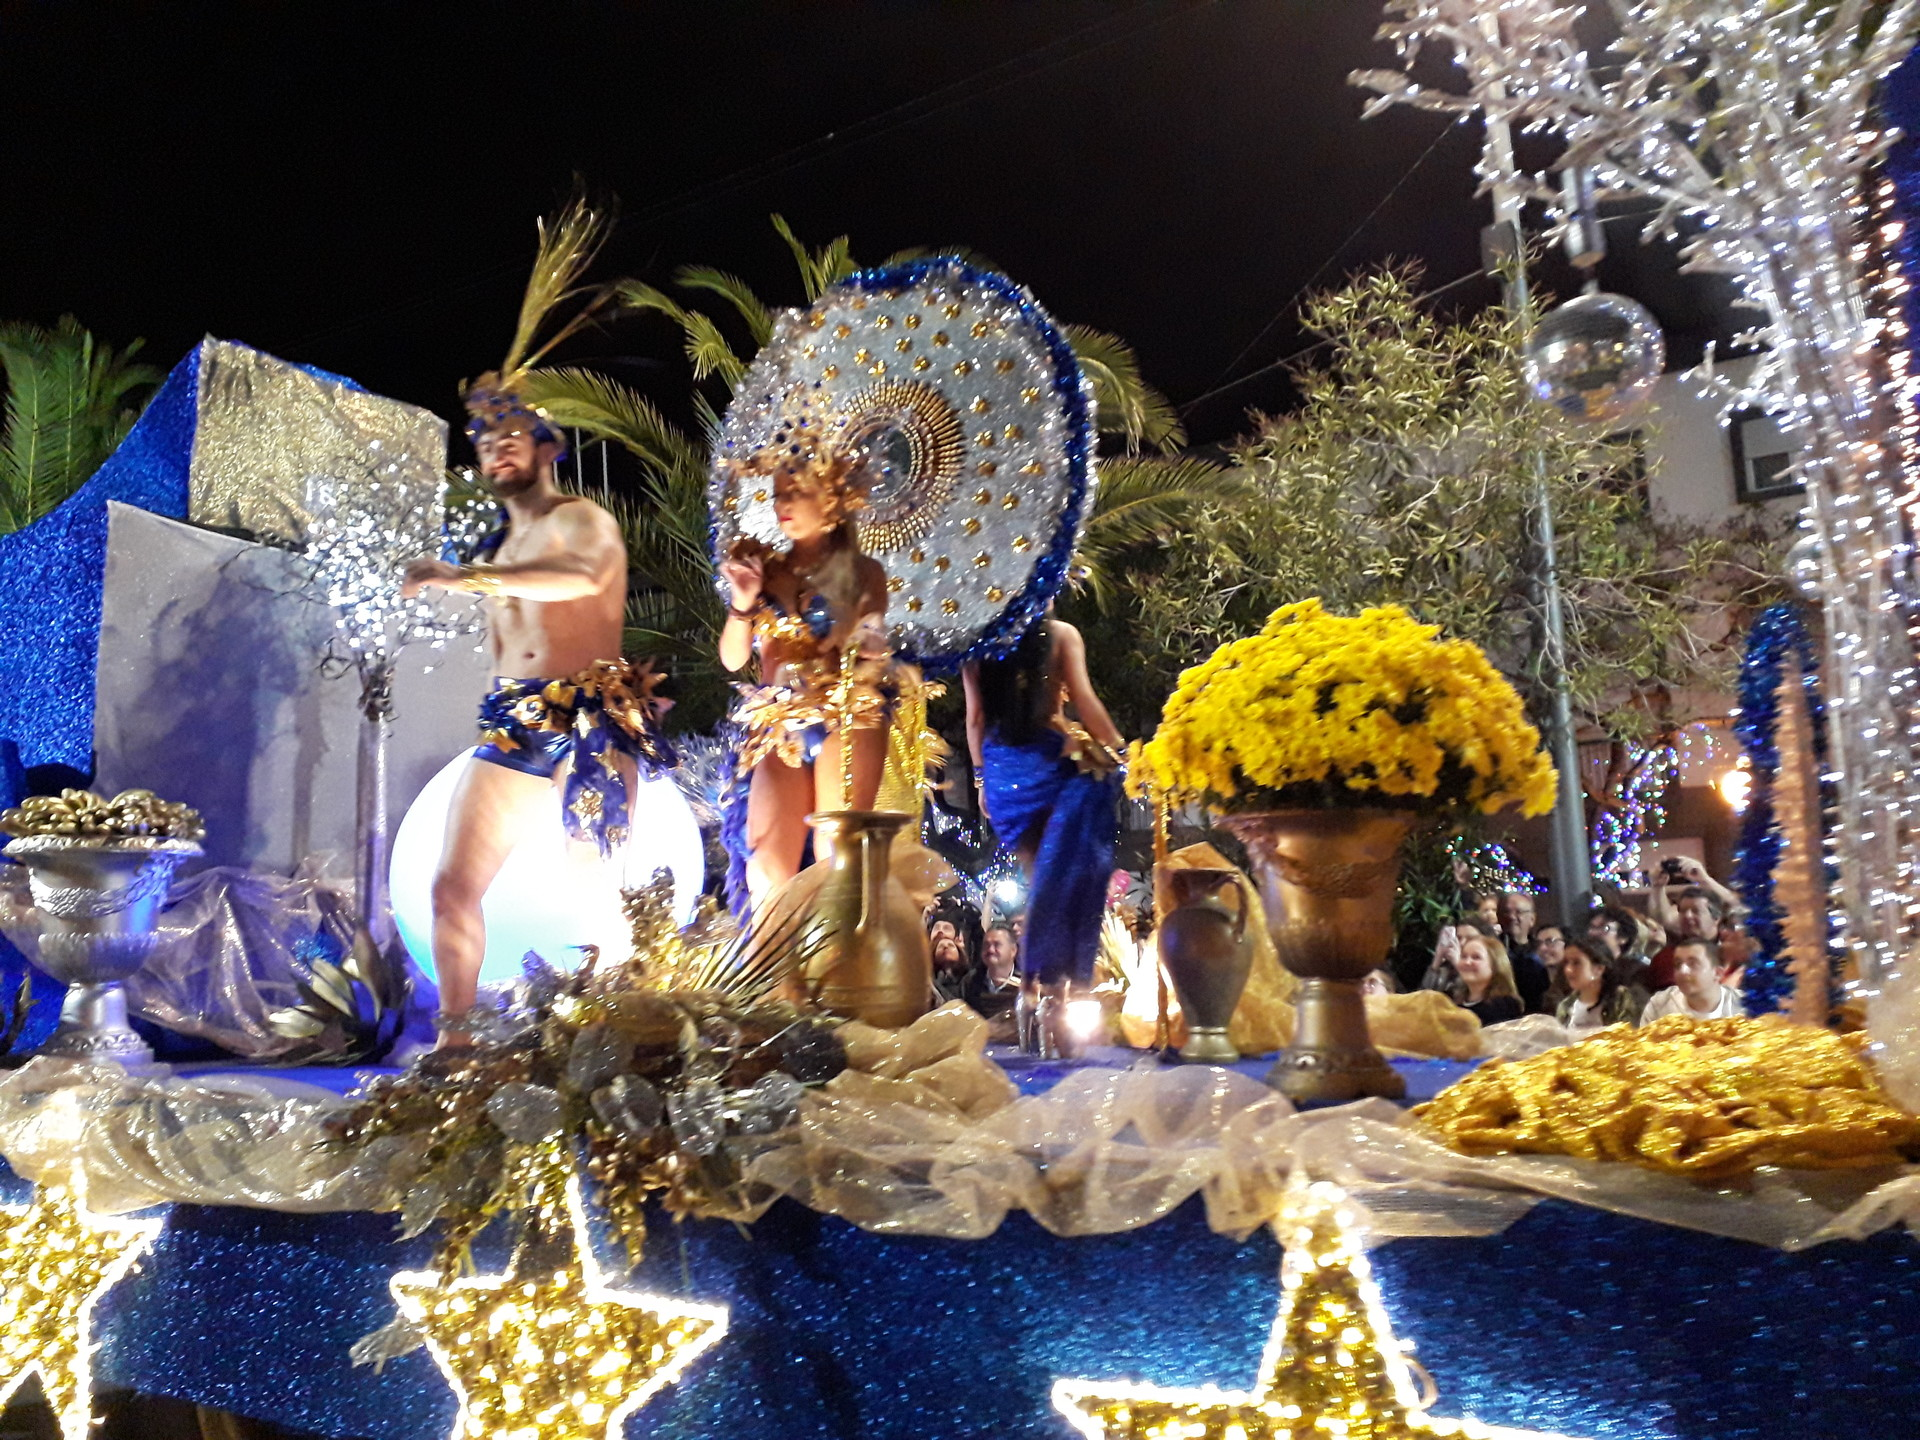 Other events celebrated in Madeira - Carnival